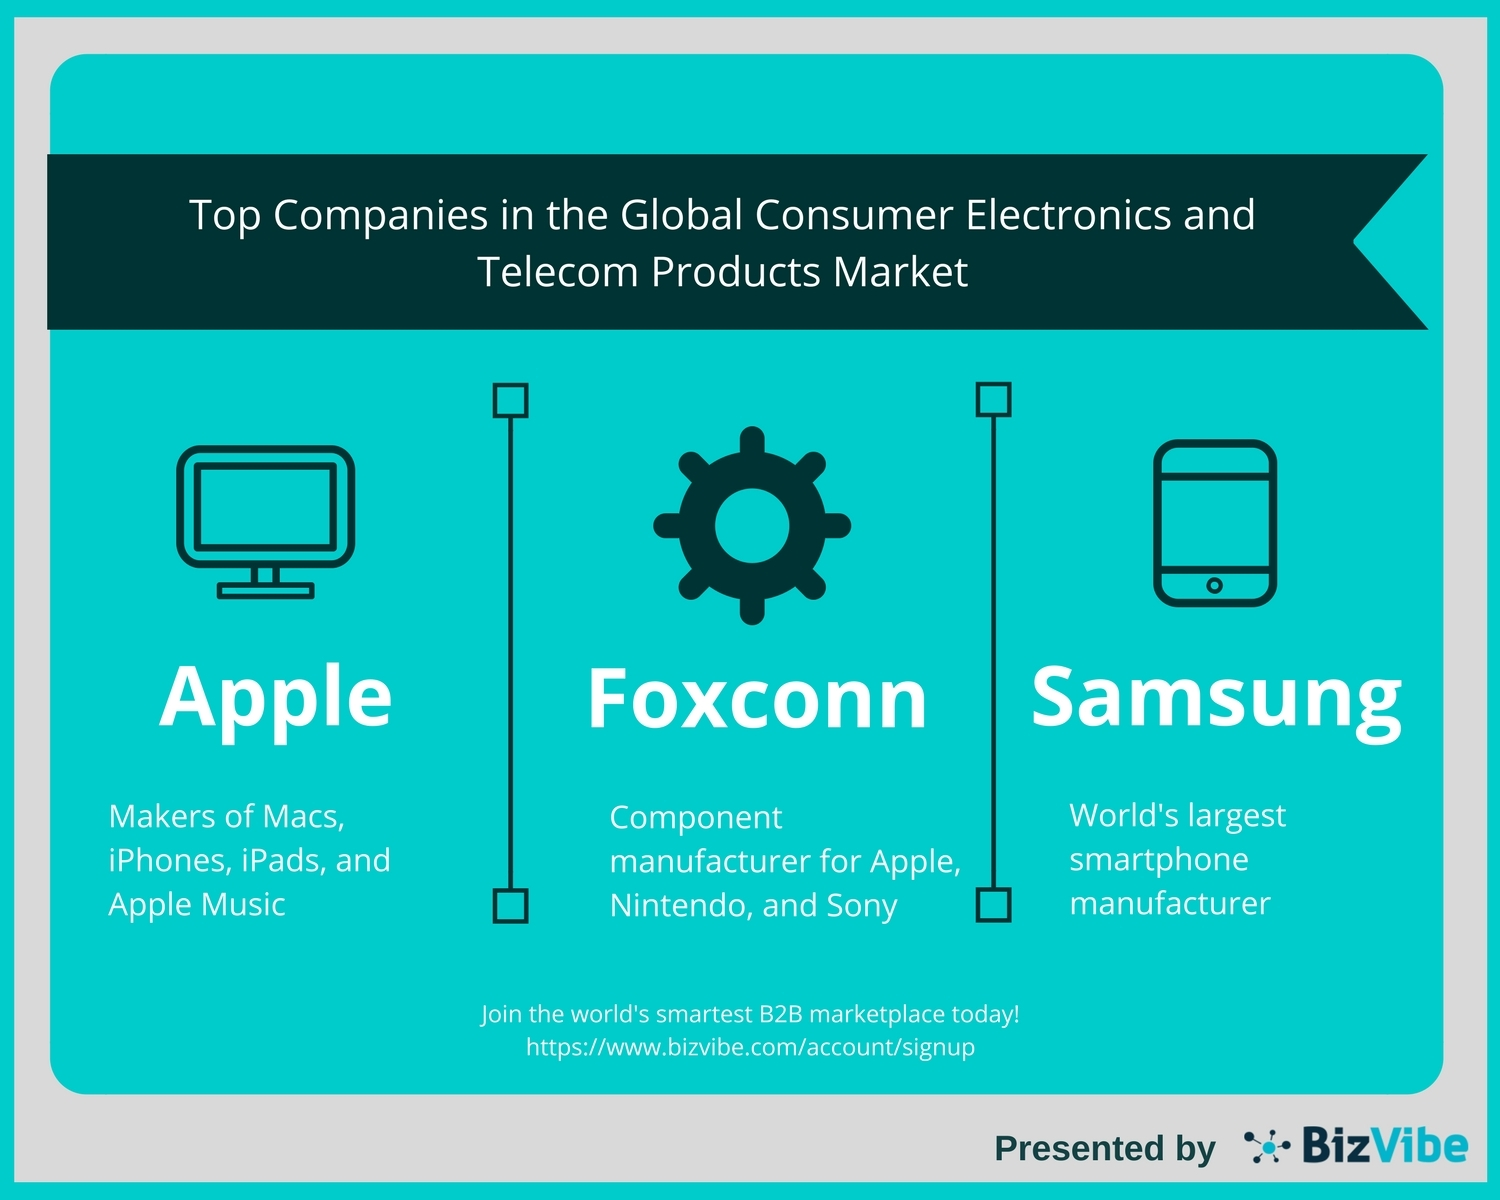 Top 5 Companies in the Global Consumer Electronics and